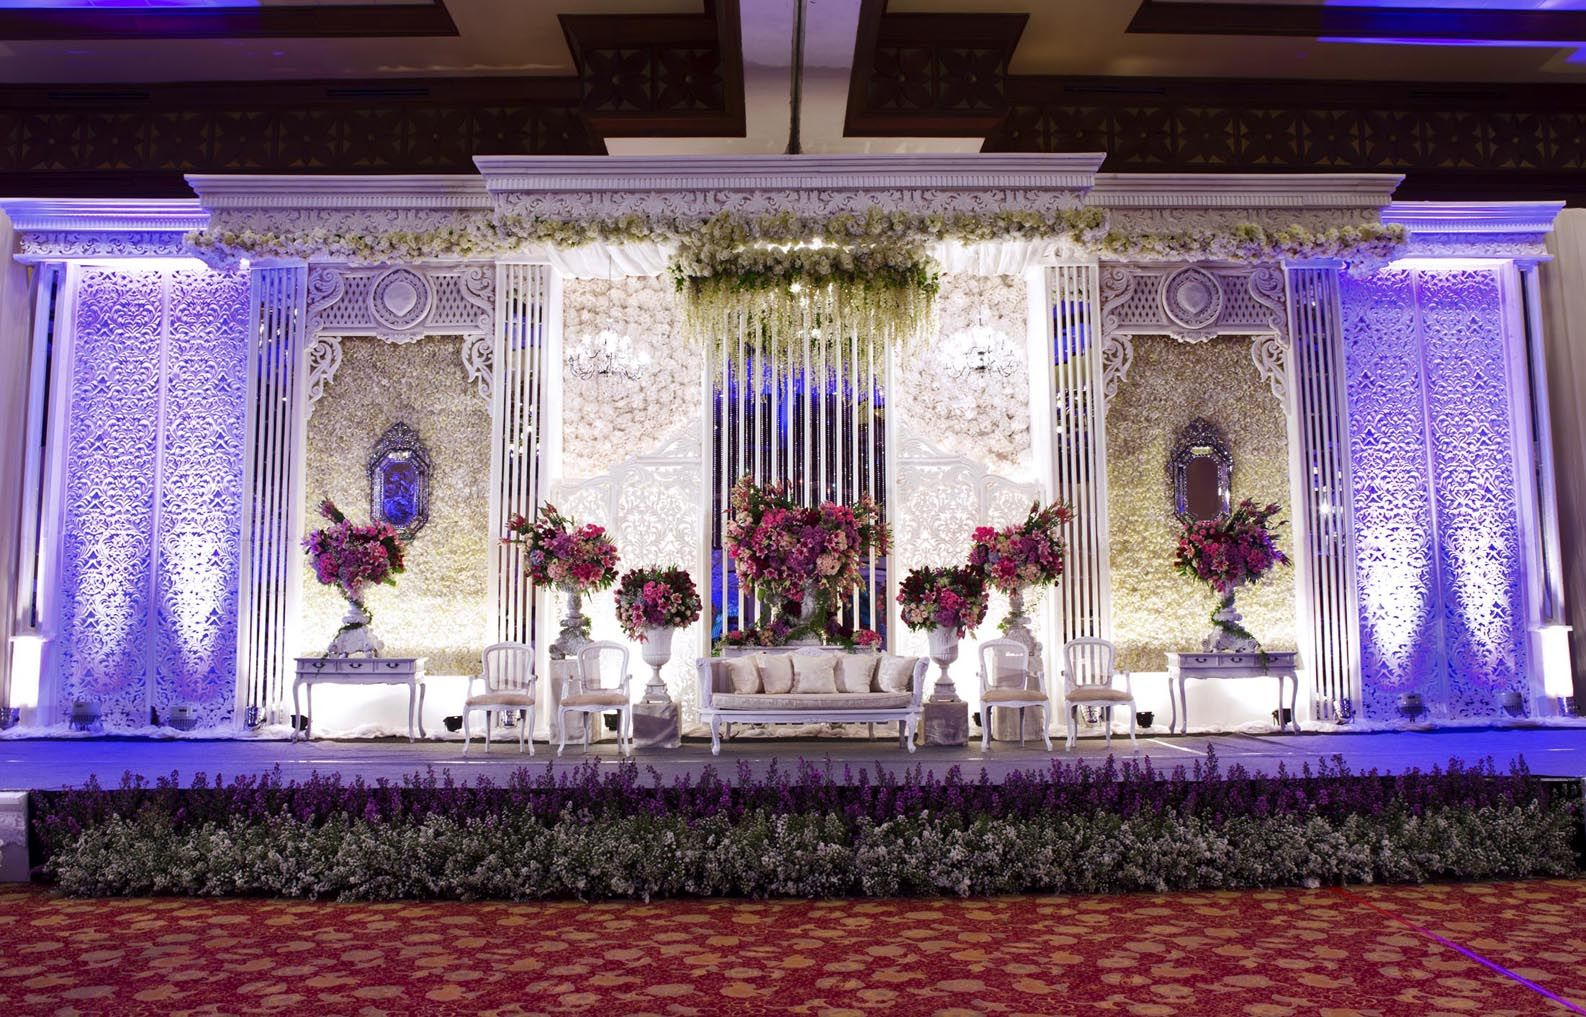 Mawarprada dekorasi pernikahan pelaminan wedding decoration mawarprada dekorasi pernikahan pelaminan wedding decoration romantic purple junglespirit Choice Image